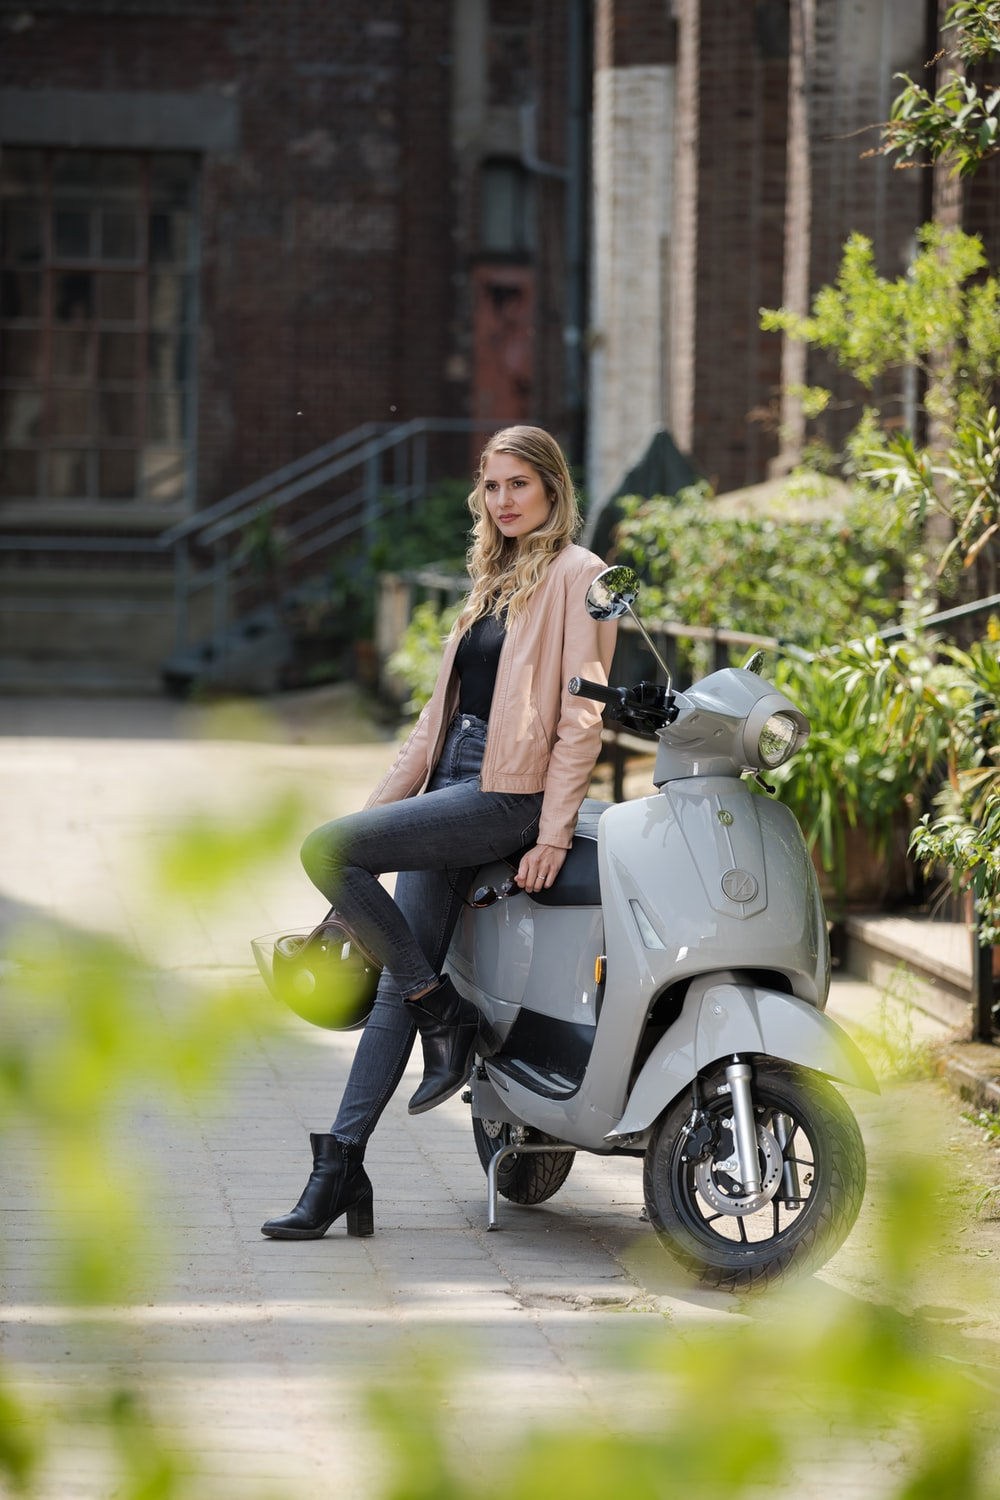 woman in black jacket and black pants riding on gray motor scooter